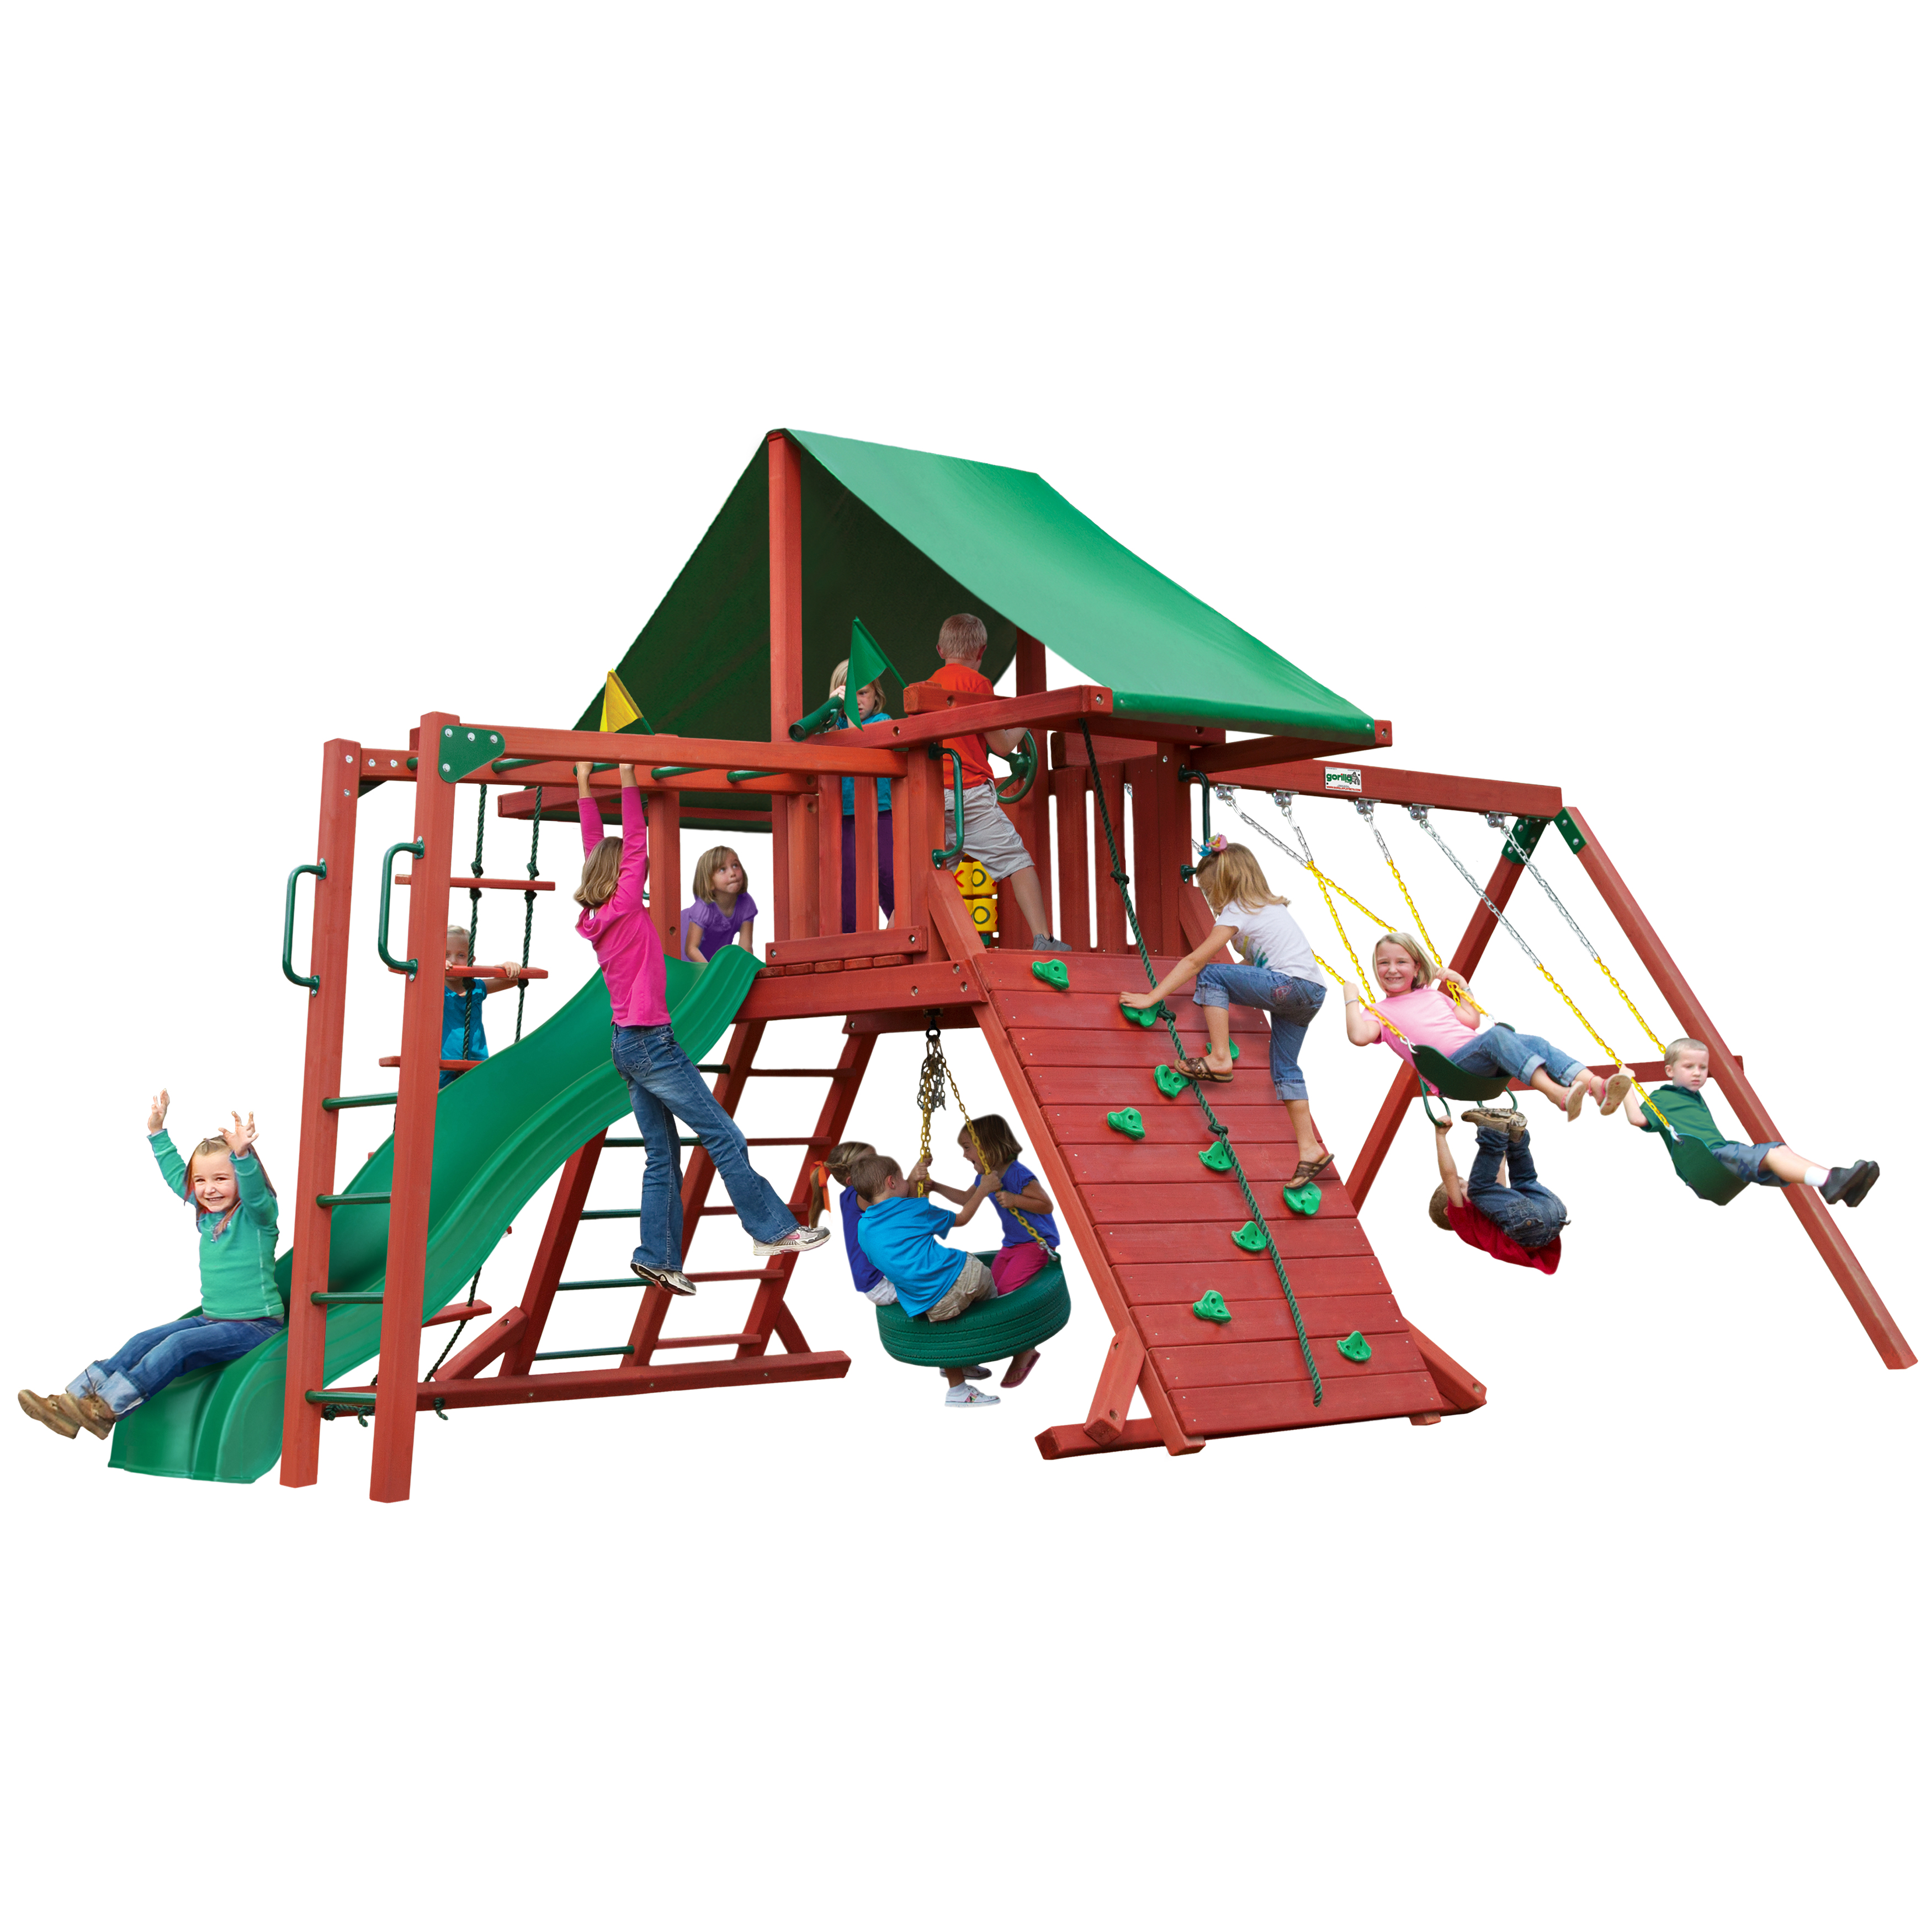 "Gorilla Playsets 37"" Green Metal Safety Handle - Wrap Mount"